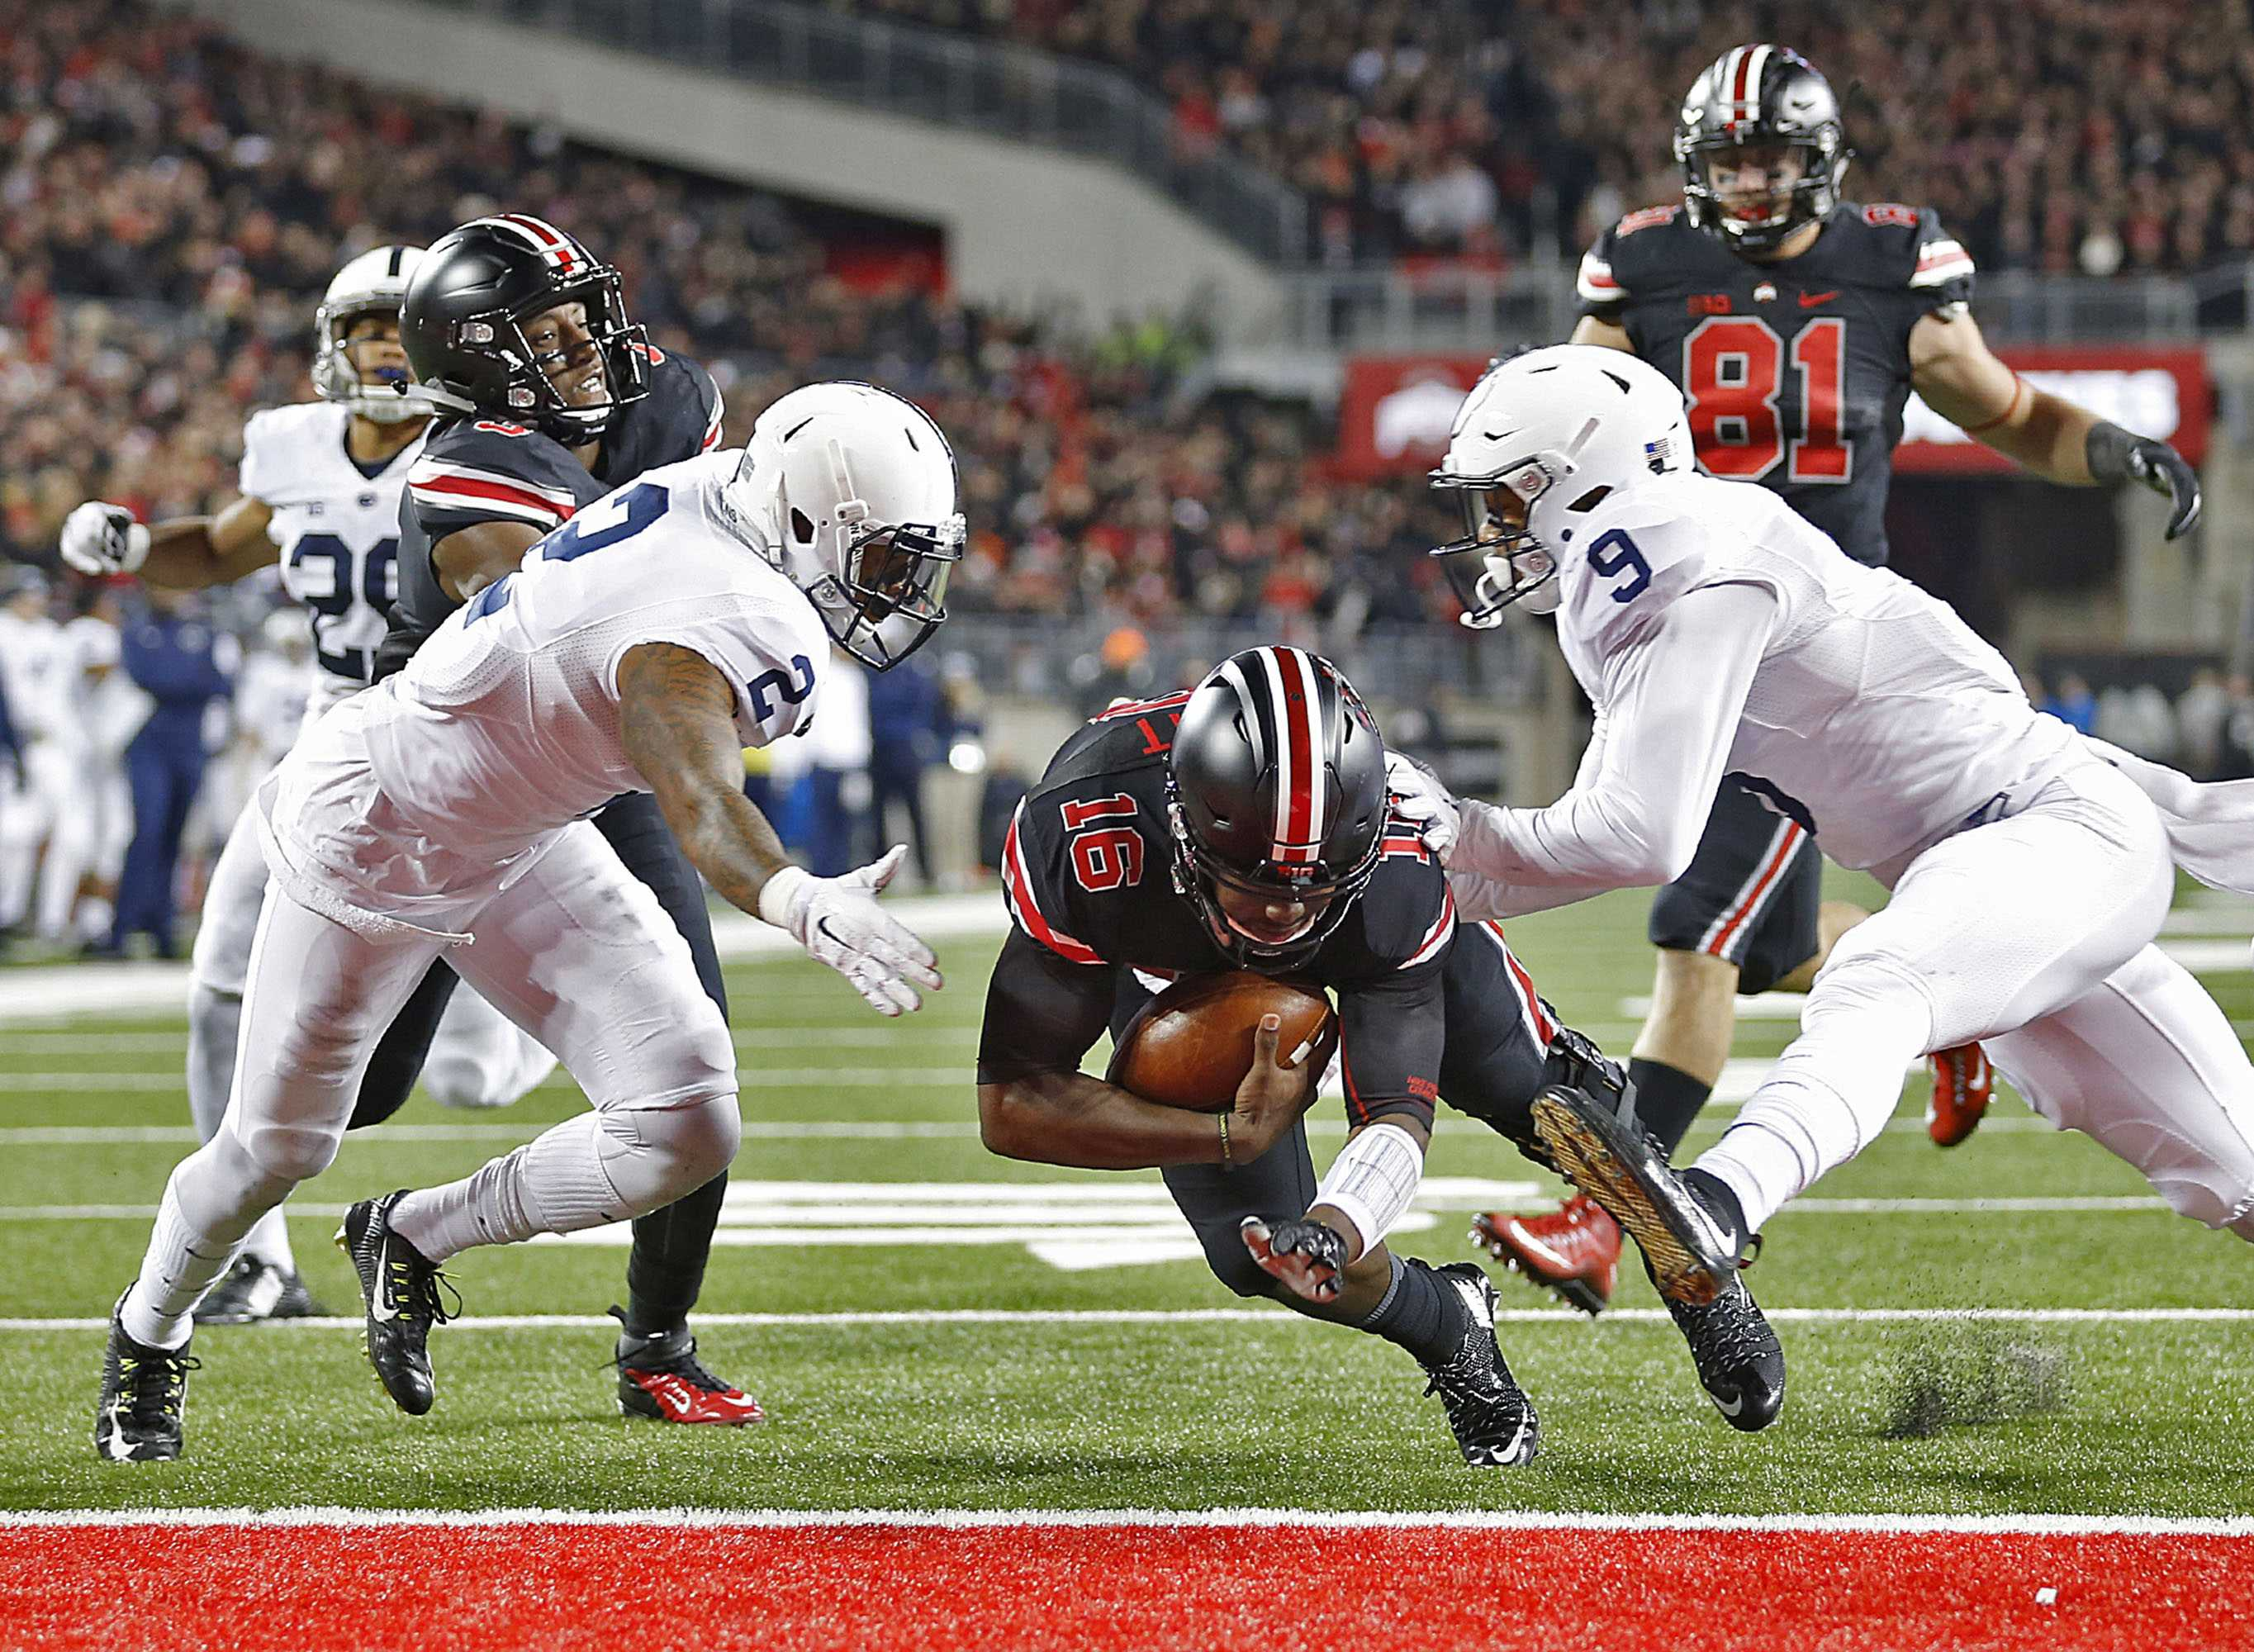 Ohio State quarterback J.T. Barrett (16) slides between Penn State safeties Jordan Lucas (9) and Marcus Allen (2) for a second-quarter touchdown at Ohio Stadium in Columbus, Ohio, on Saturday, Oct. 17, 2015.